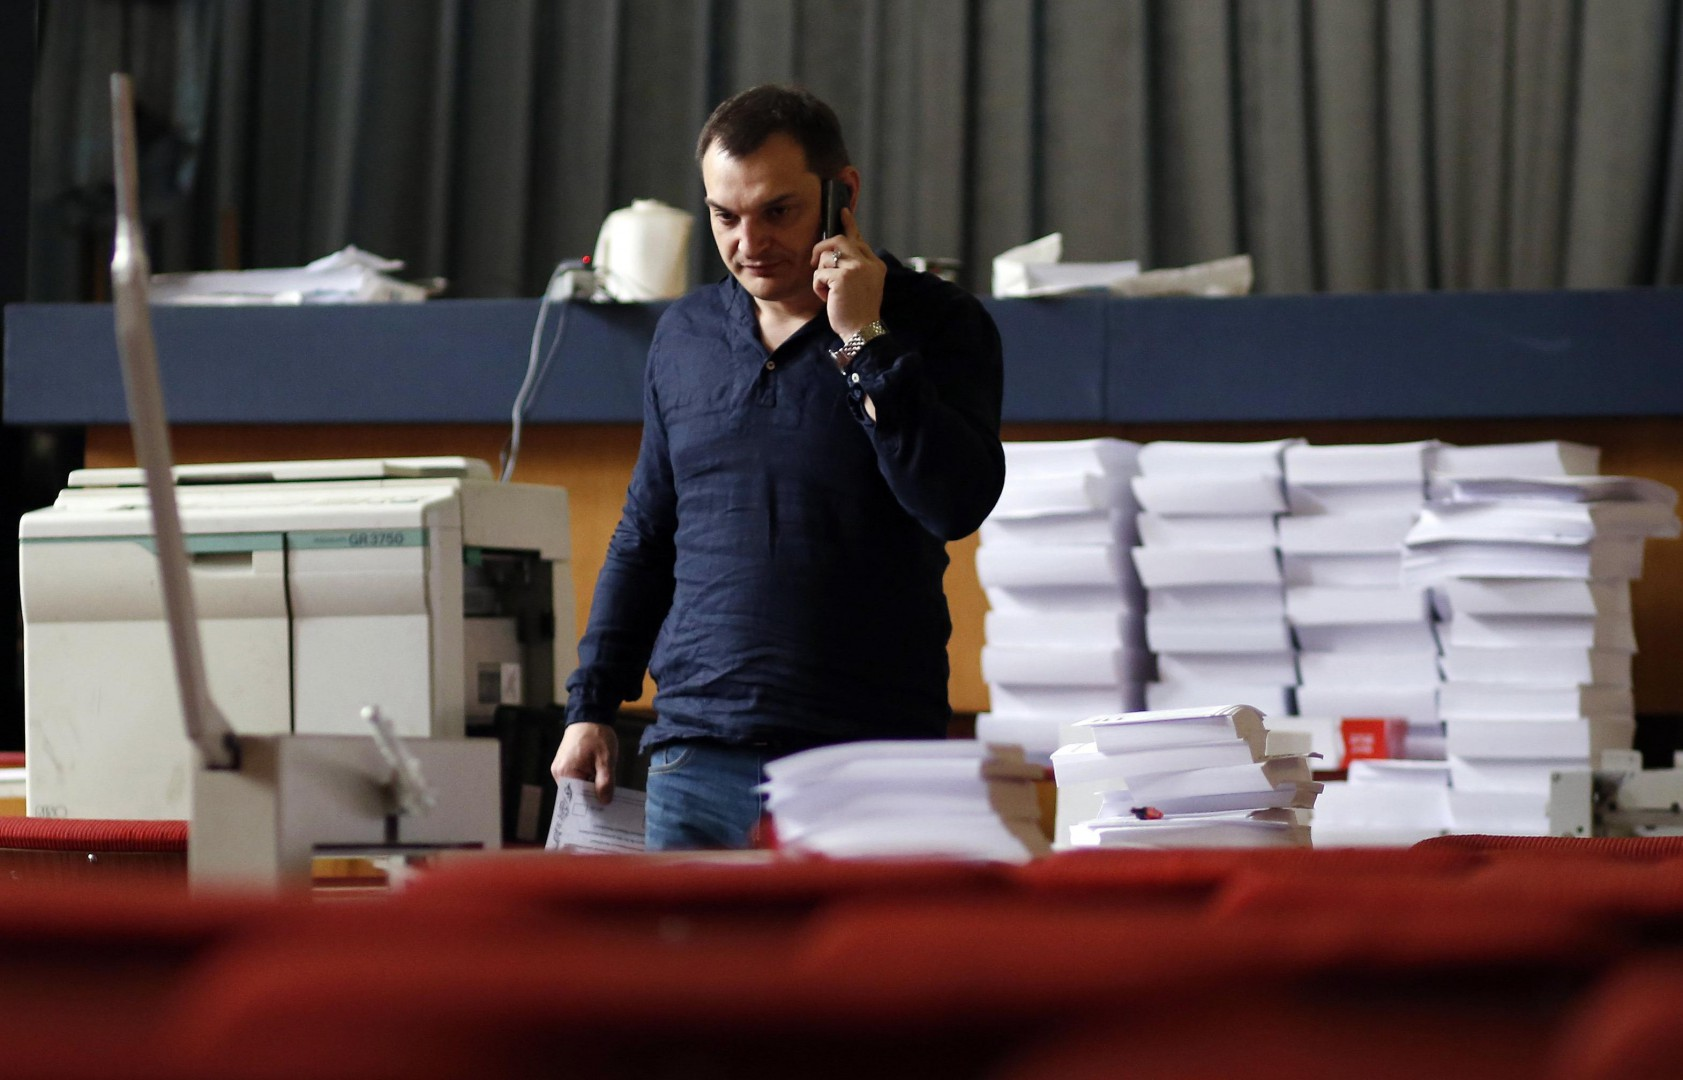 Roman Lyagin, leader of the separatist republic's election commission, talks on a mobile phone at the commission headquarters in Donetsk, eastern Ukraine May 8, 2014. Pro-Russian separatists in eastern Ukraine ignored a public call by Russian President Vladimir Putin to postpone a referendum on independence, declaring they would go ahead on May 11 with a vote that could lead to war.    REUTERS/Marko Djurica (UKRAINE - Tags: POLITICS CIVIL UNREST ELECTIONS)